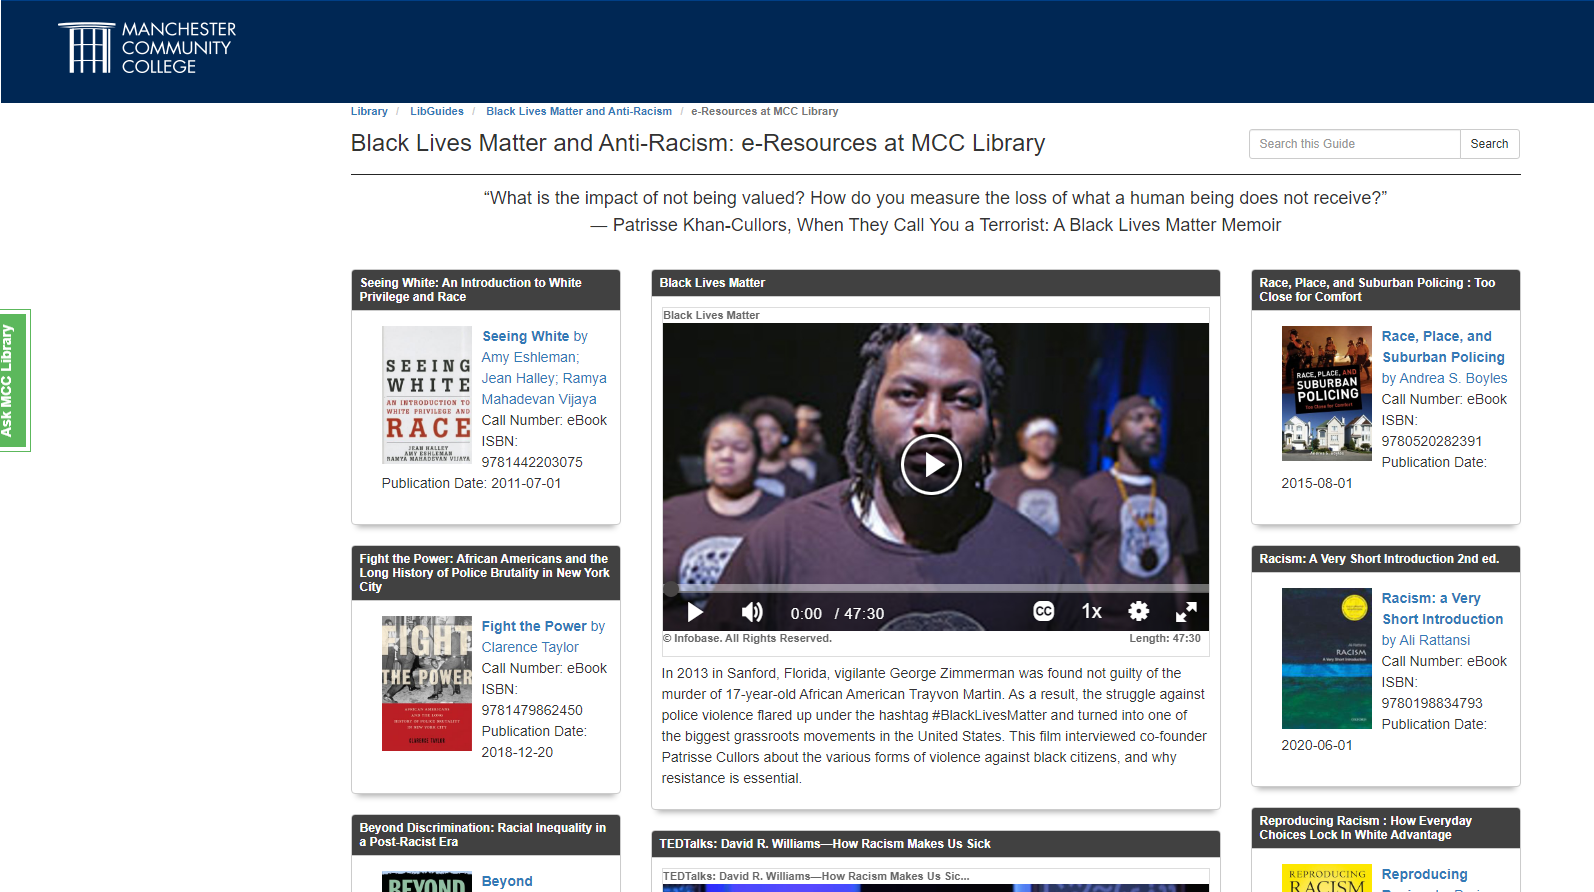 Image of Black Lives Matter and Anti-Racism LibGuide homepage